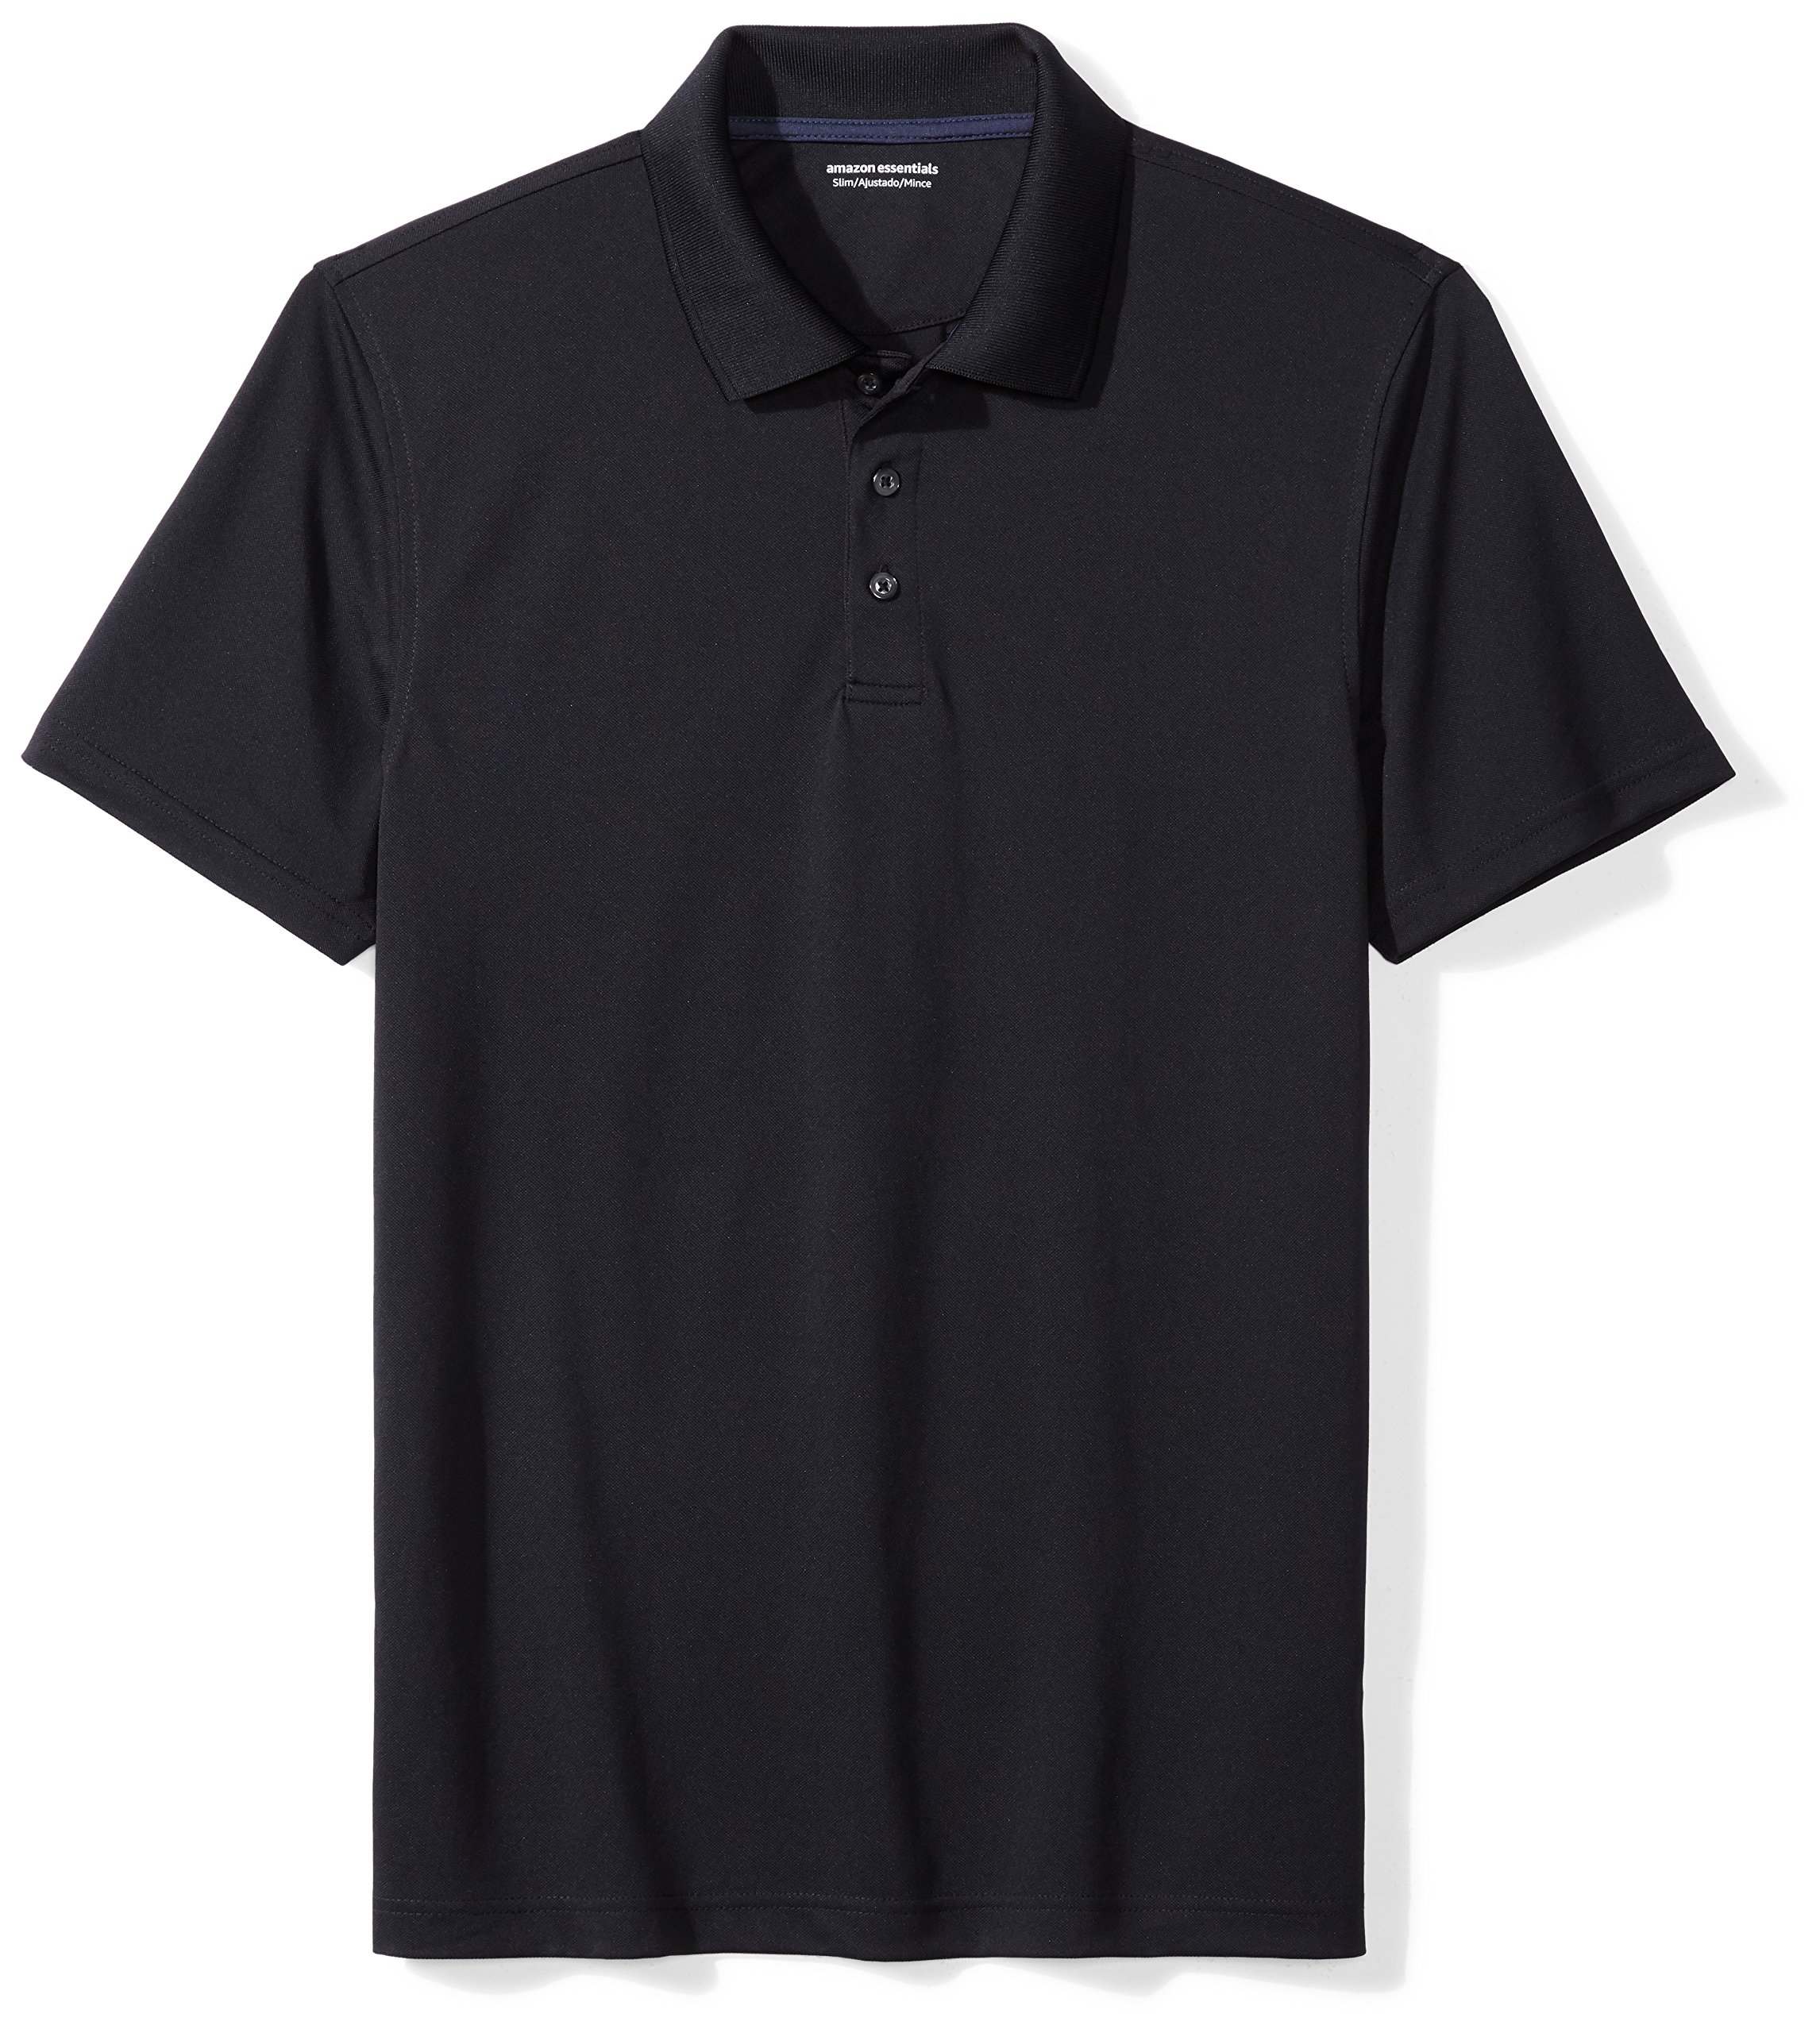 Amazon Essentials Men's Standard Slim-Fit Quick-Dry Golf Polo Shirt, Black, Large